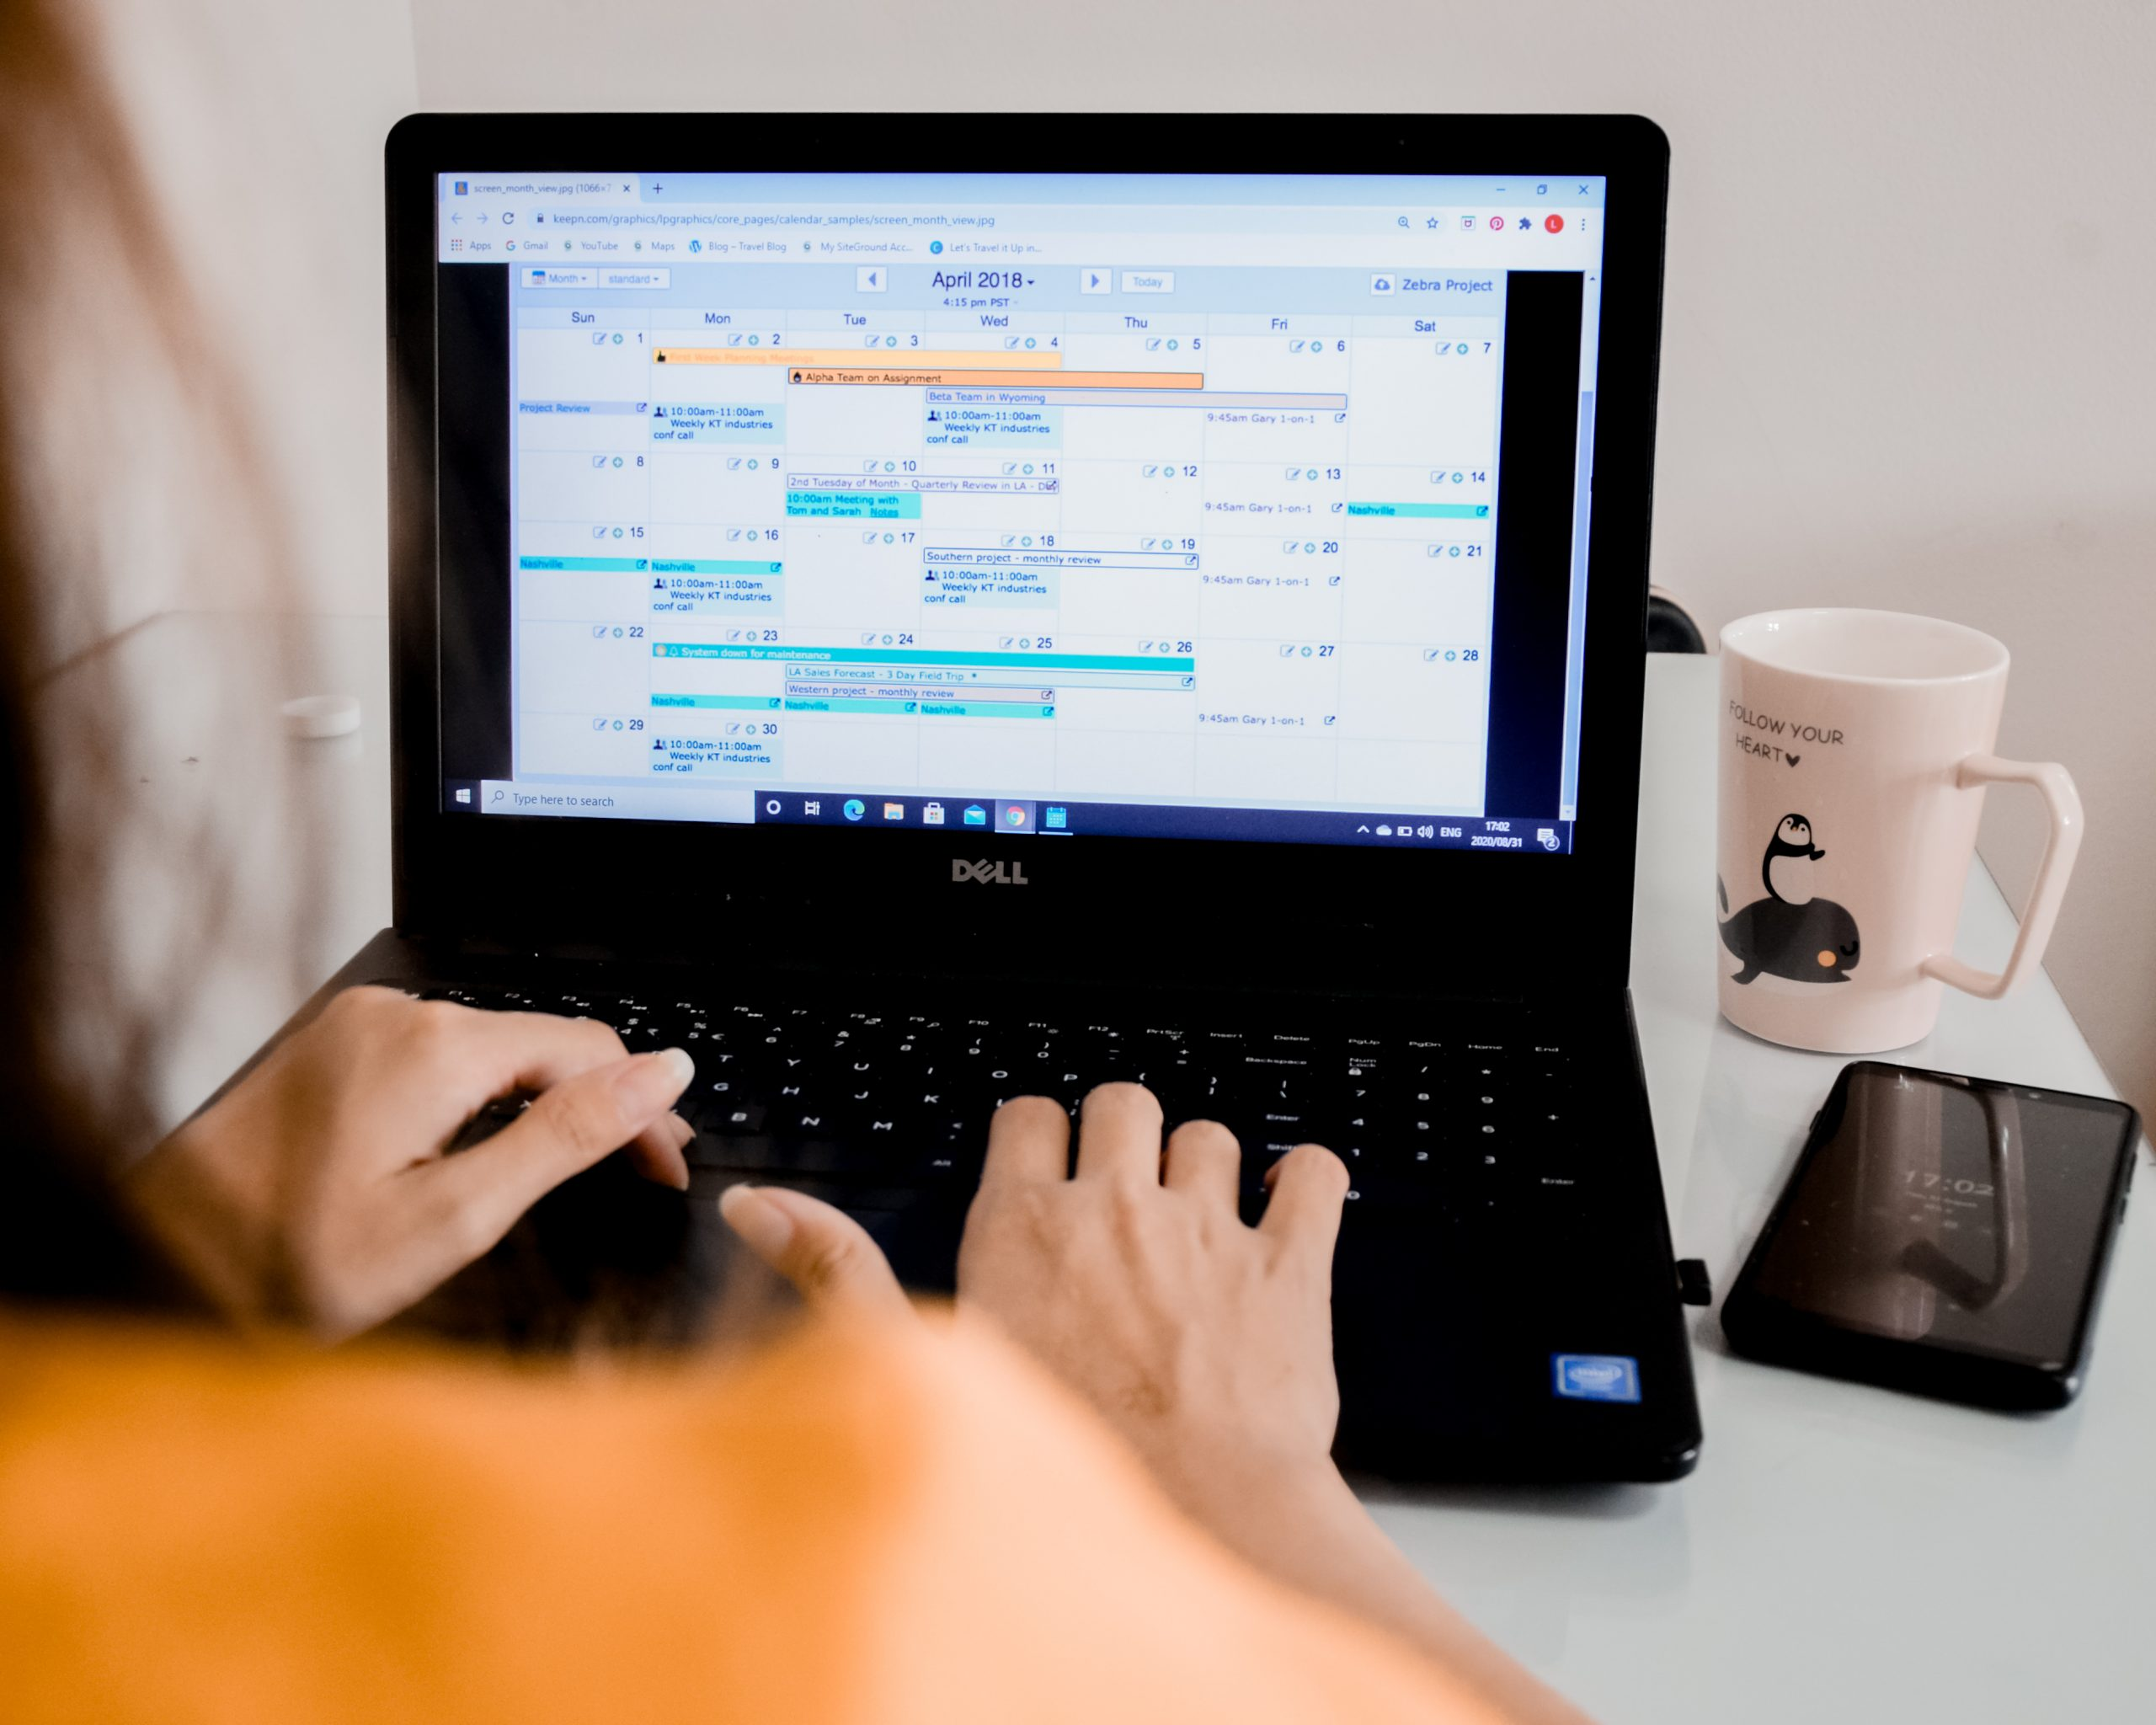 Become an virtual assistant for businesses and individuals